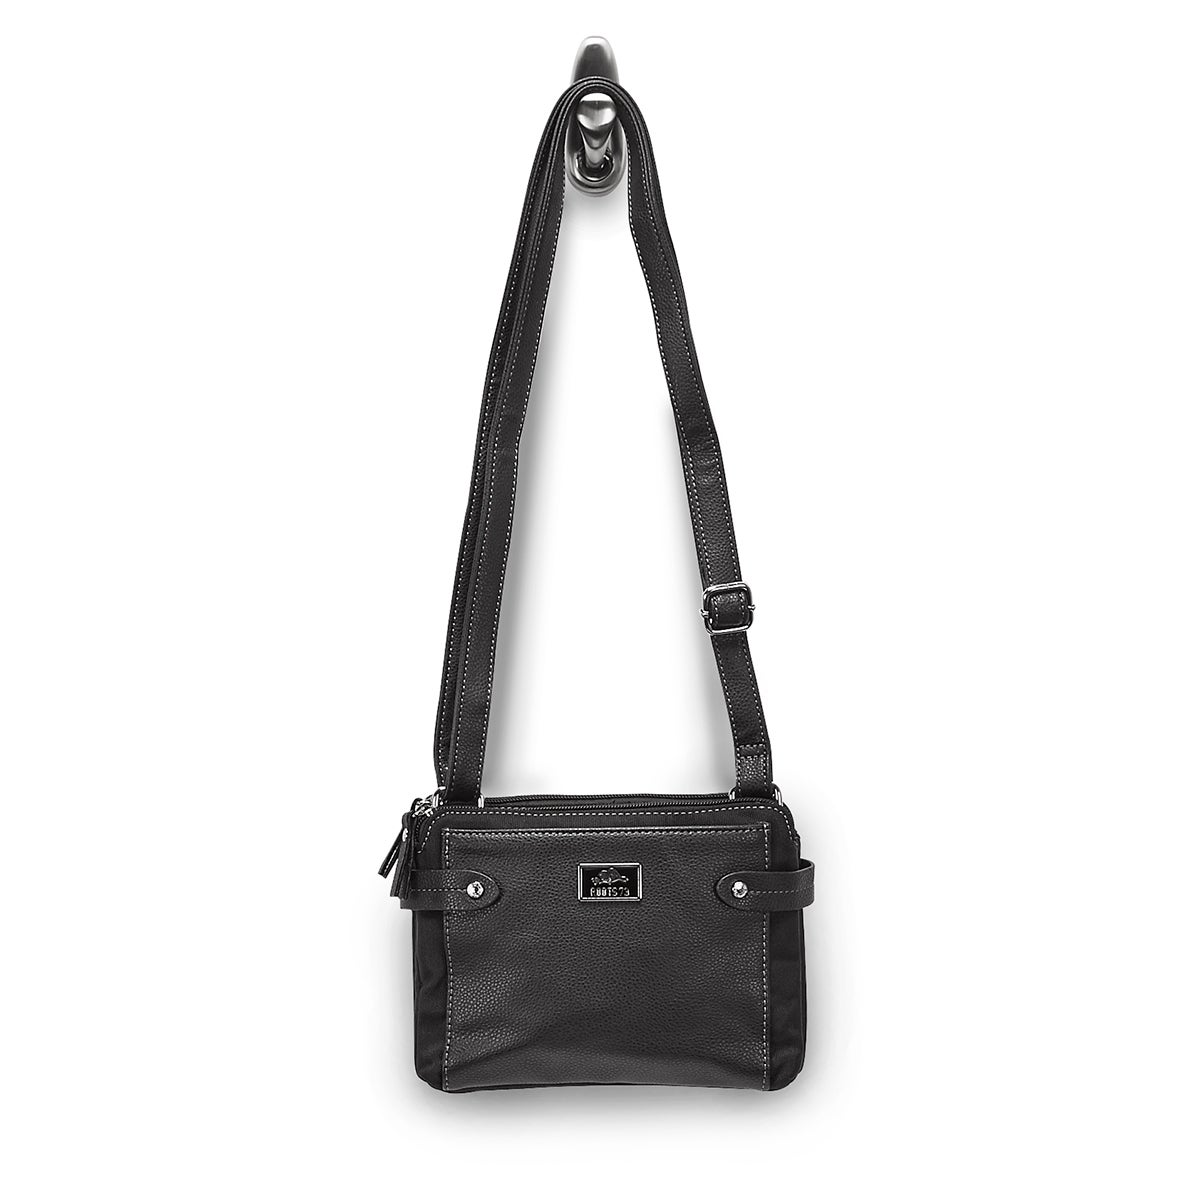 LdsRoots73 blk 2 compartment crossbody